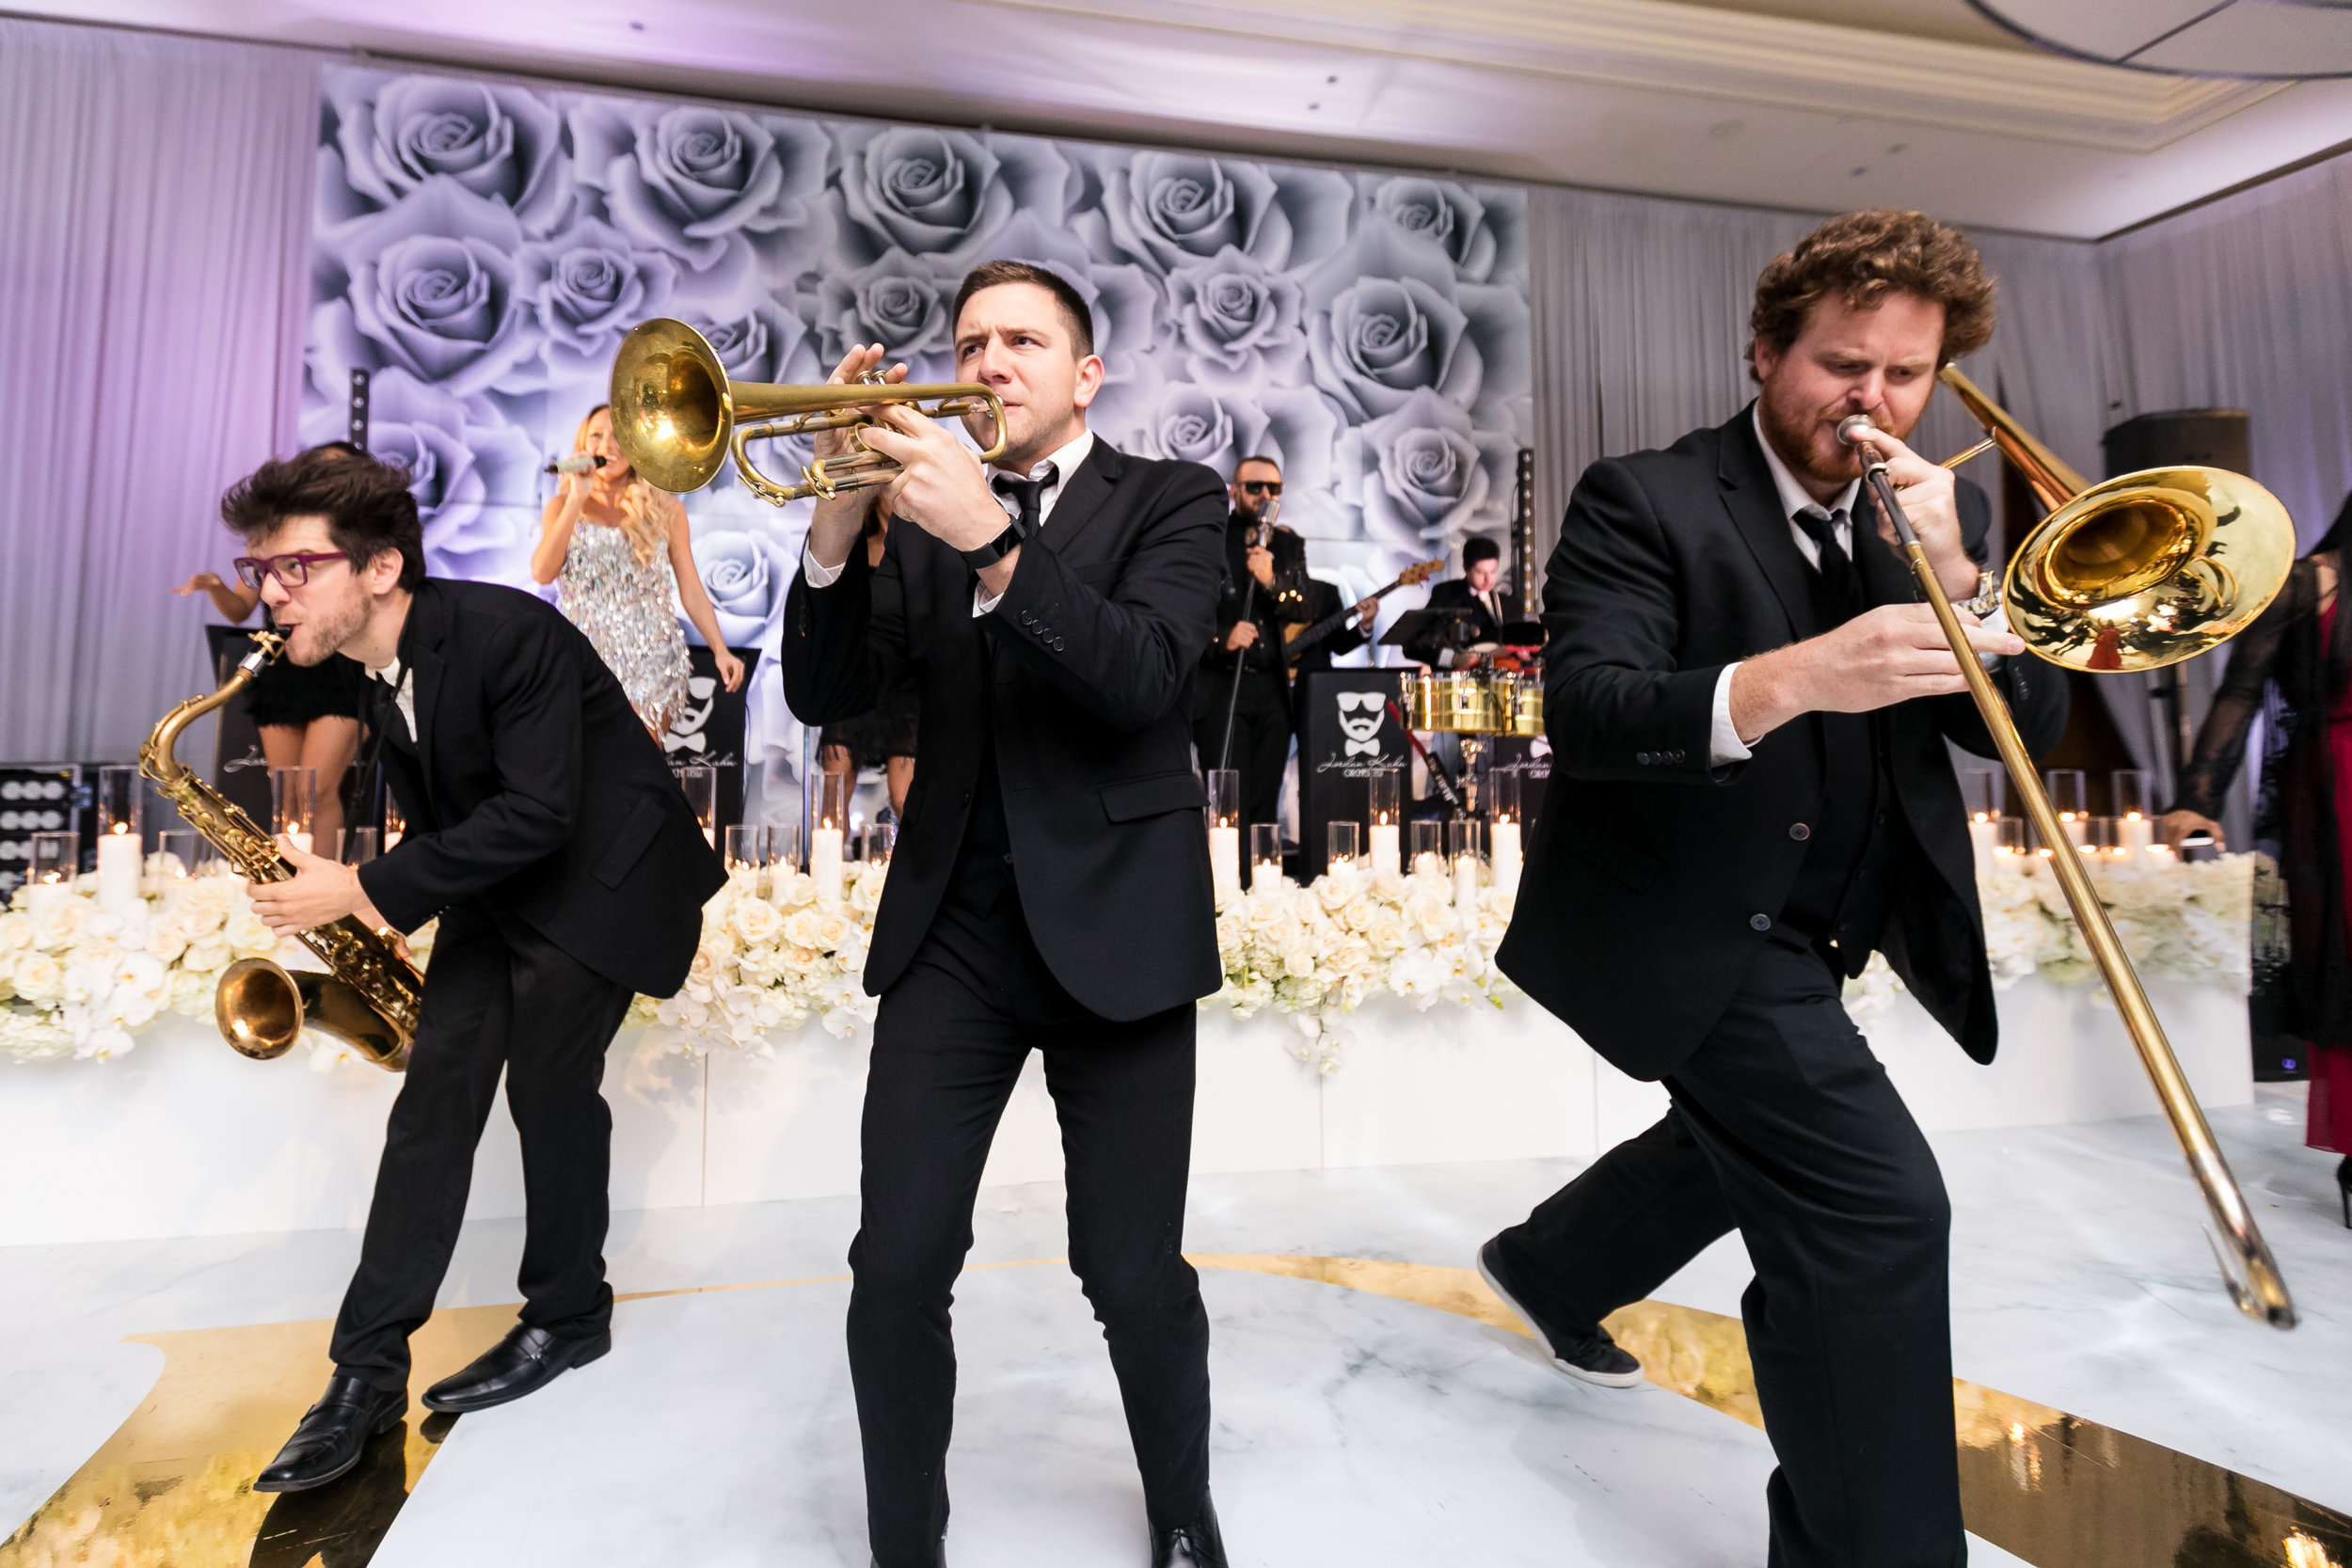 Jordan Kahn Orchestra playing in the middle of the dance floor.  Designed and Produced by Las Vegas Wedding Planner Andrea Eppolito. Images by Brian Leahy.